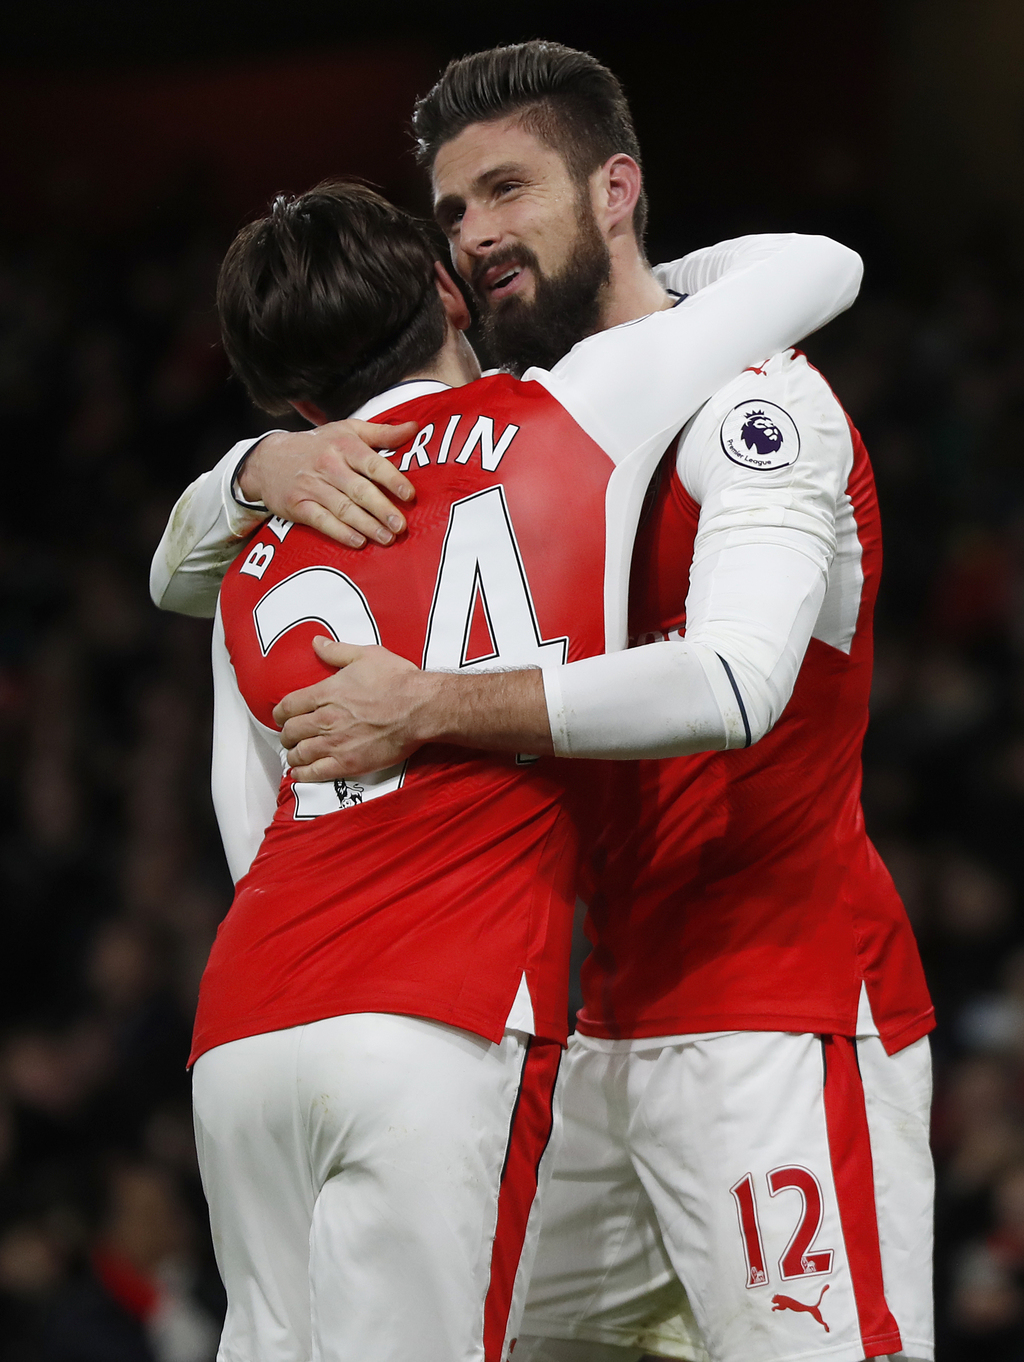 Arsenal's Olivier Giroud,right, celebrates scoring a goal with teammate Hector Bellerin during the English Premier League soccer match ...